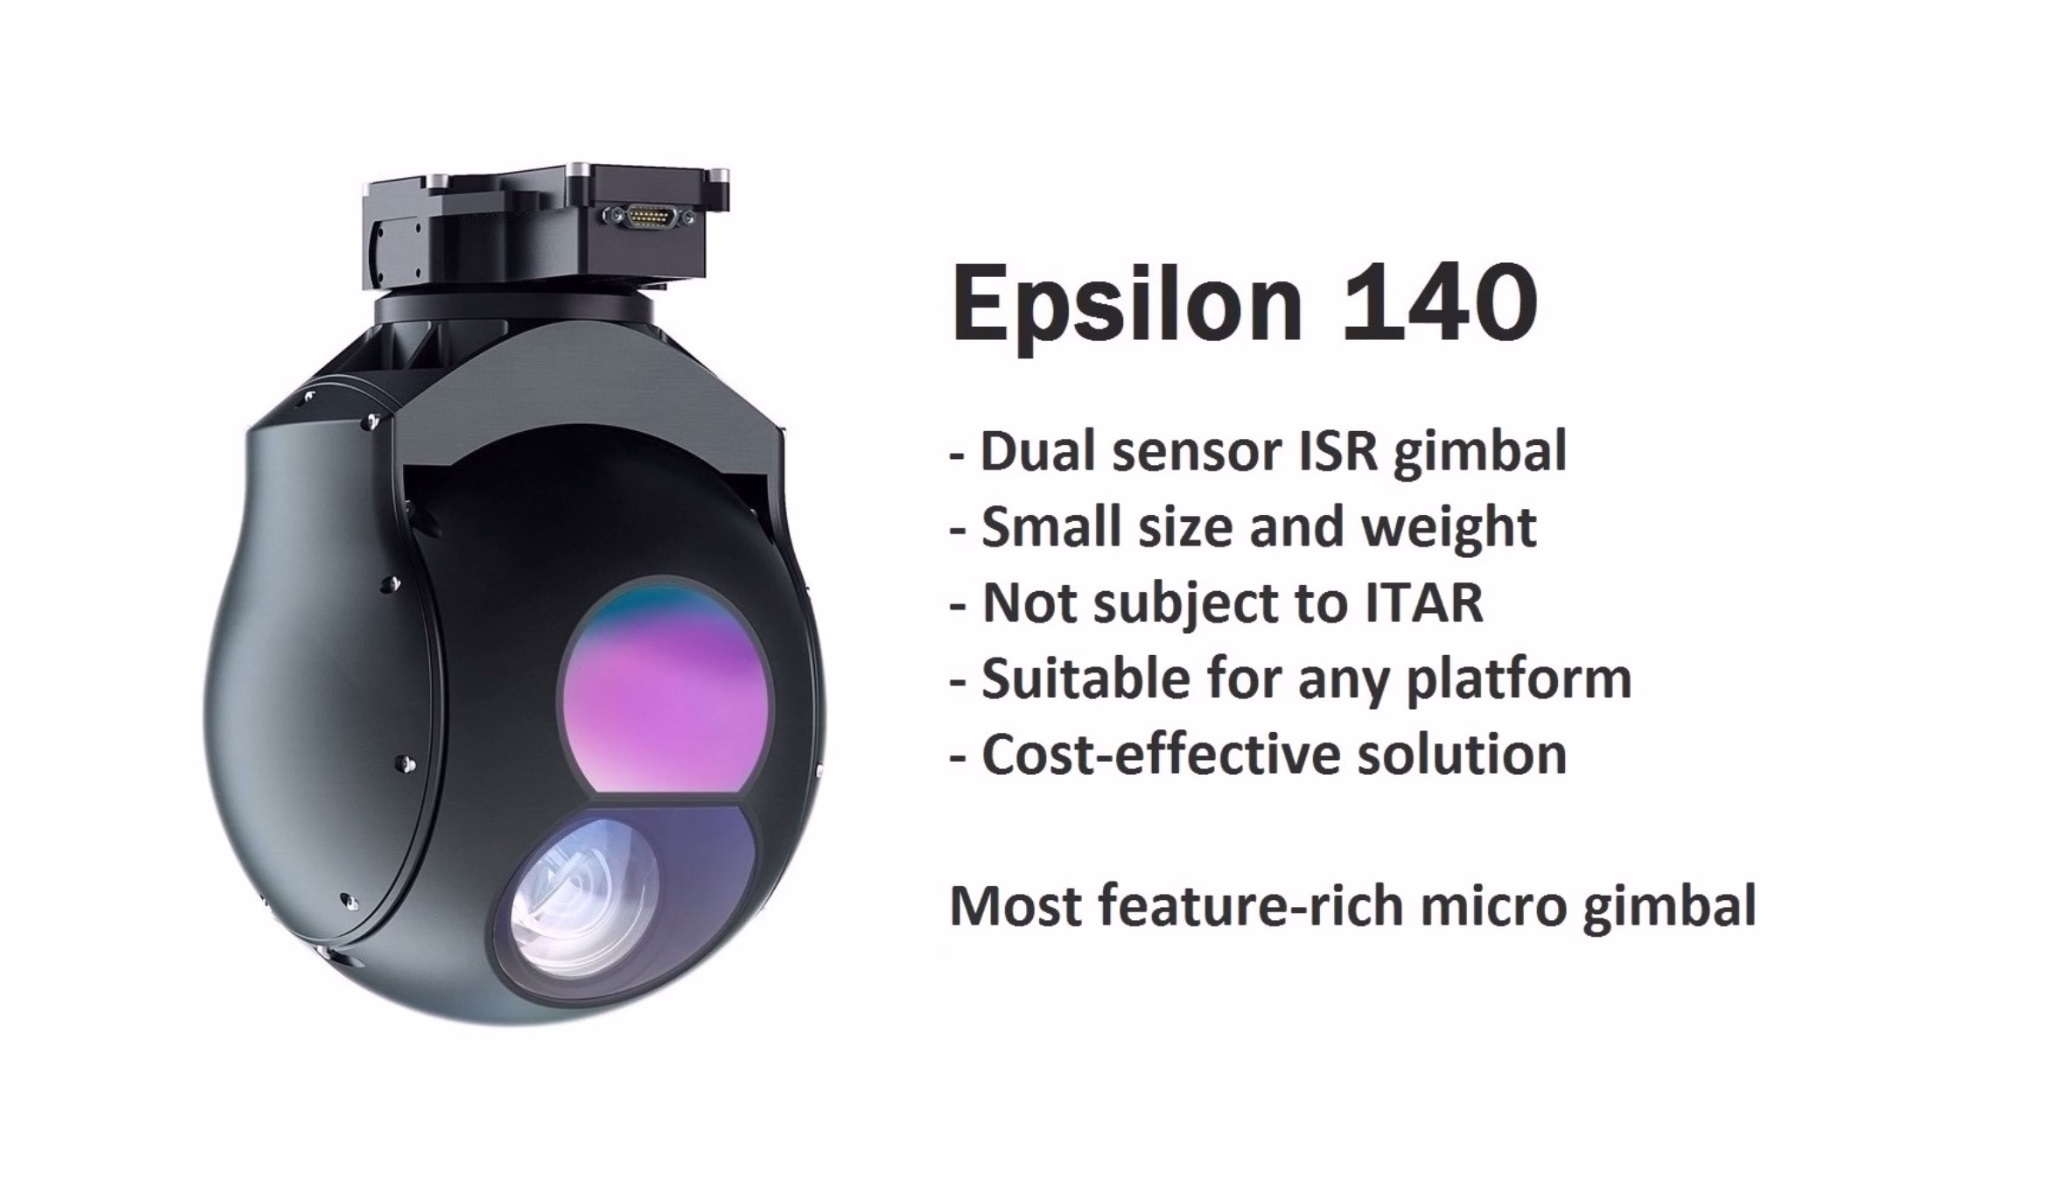 New video compilation showing the functionality of Epsilon 140